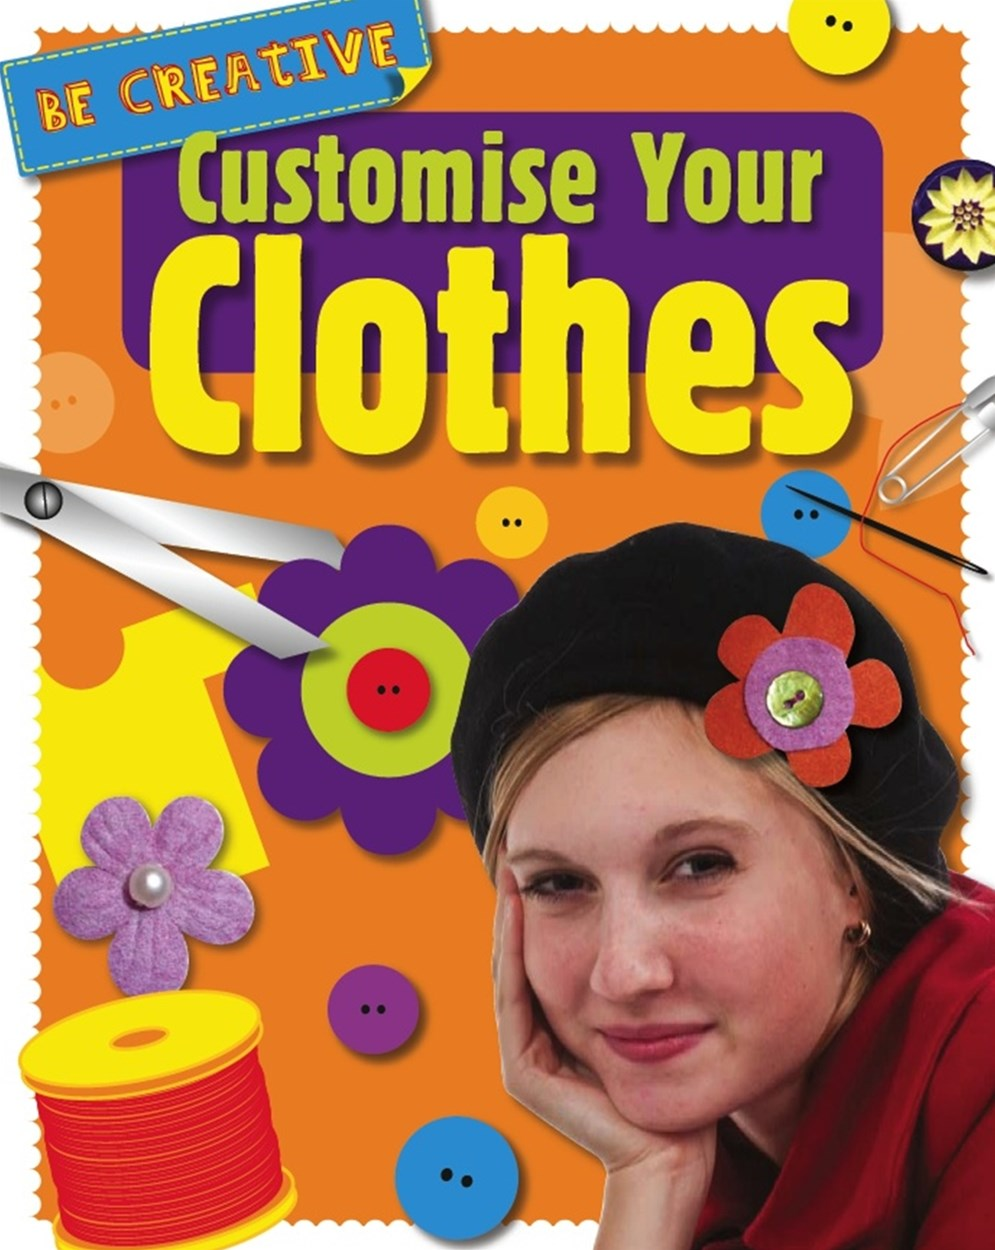 Be Creative: Customise Your Clothes